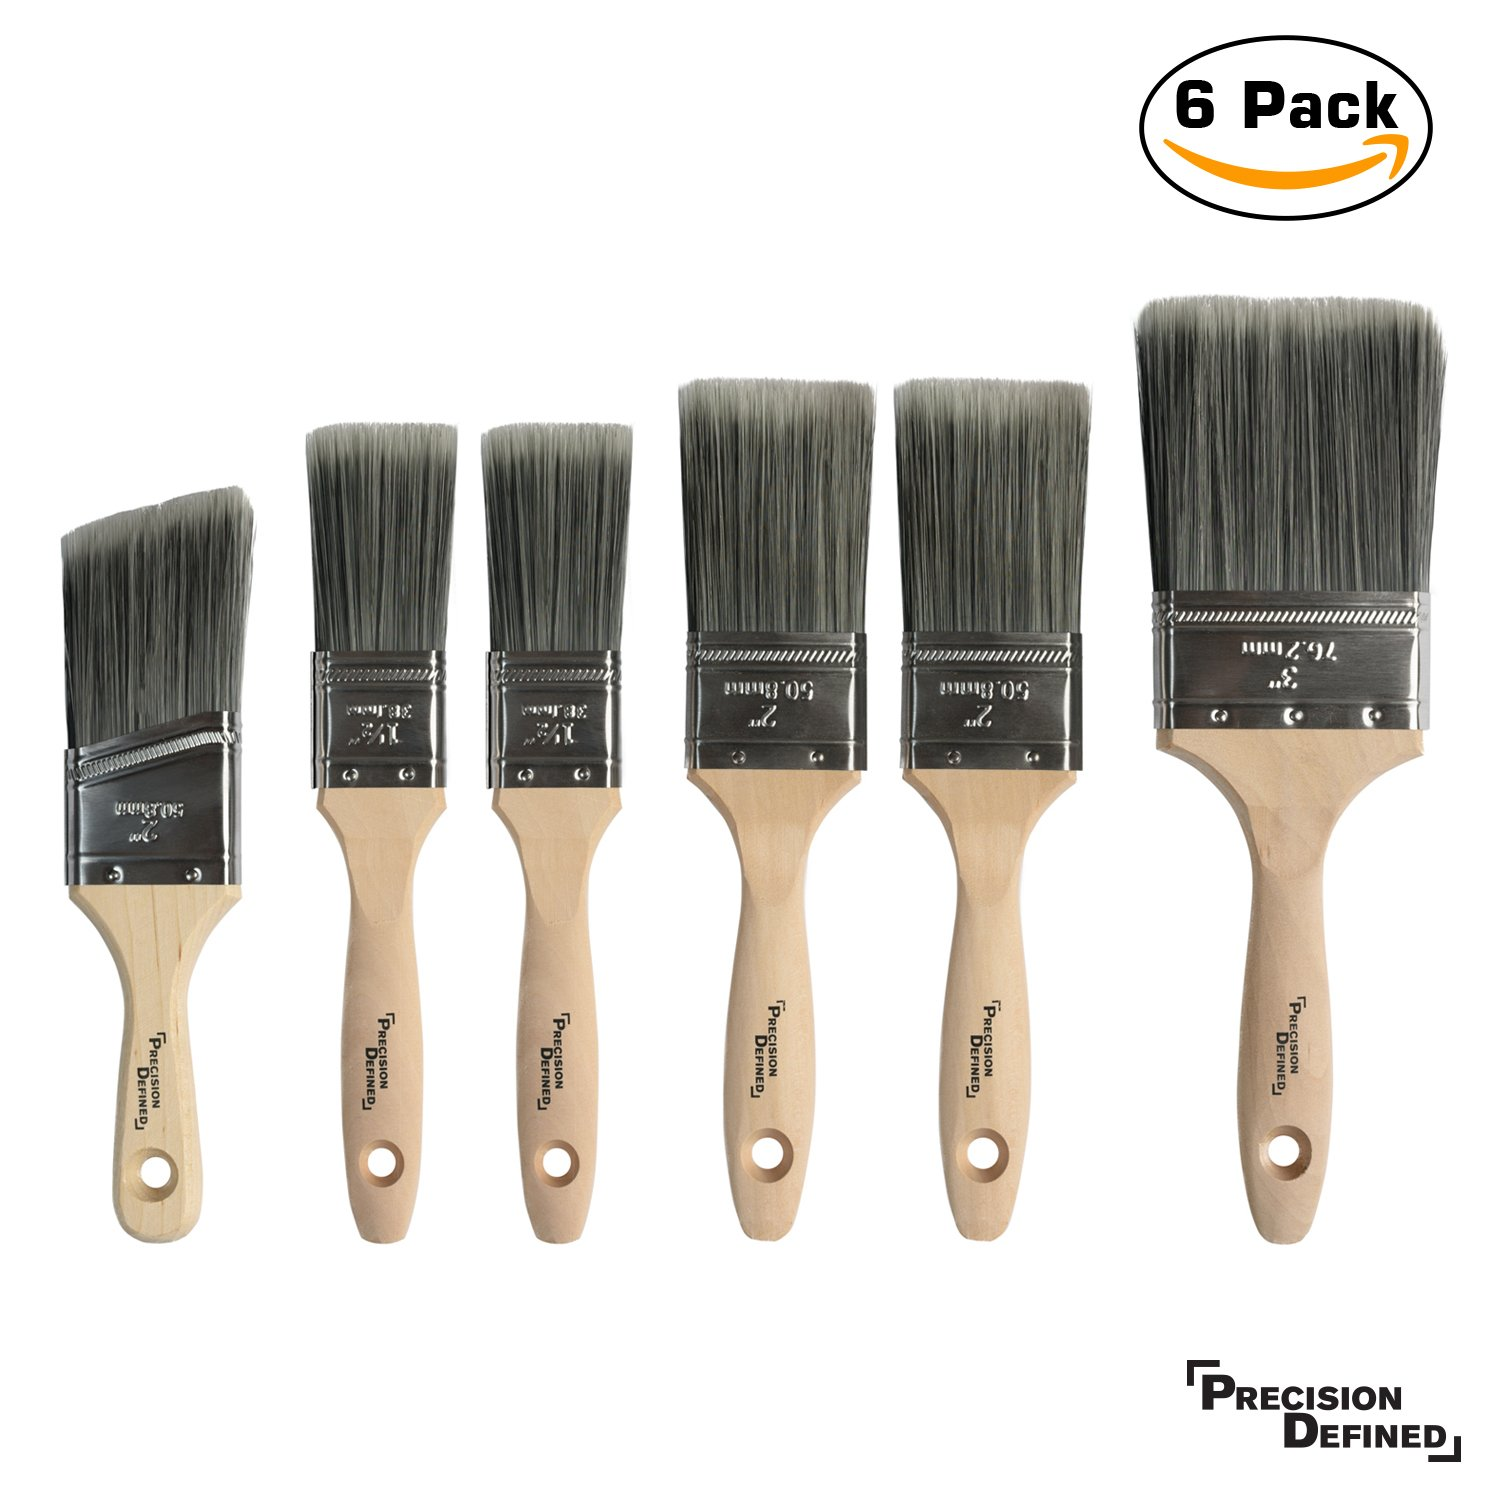 Heavy-Duty Professional 6 Piece Paintbrush Set, with SRT PET Bristles and Natural Birch Handles, Precision Defined by Precision Defined